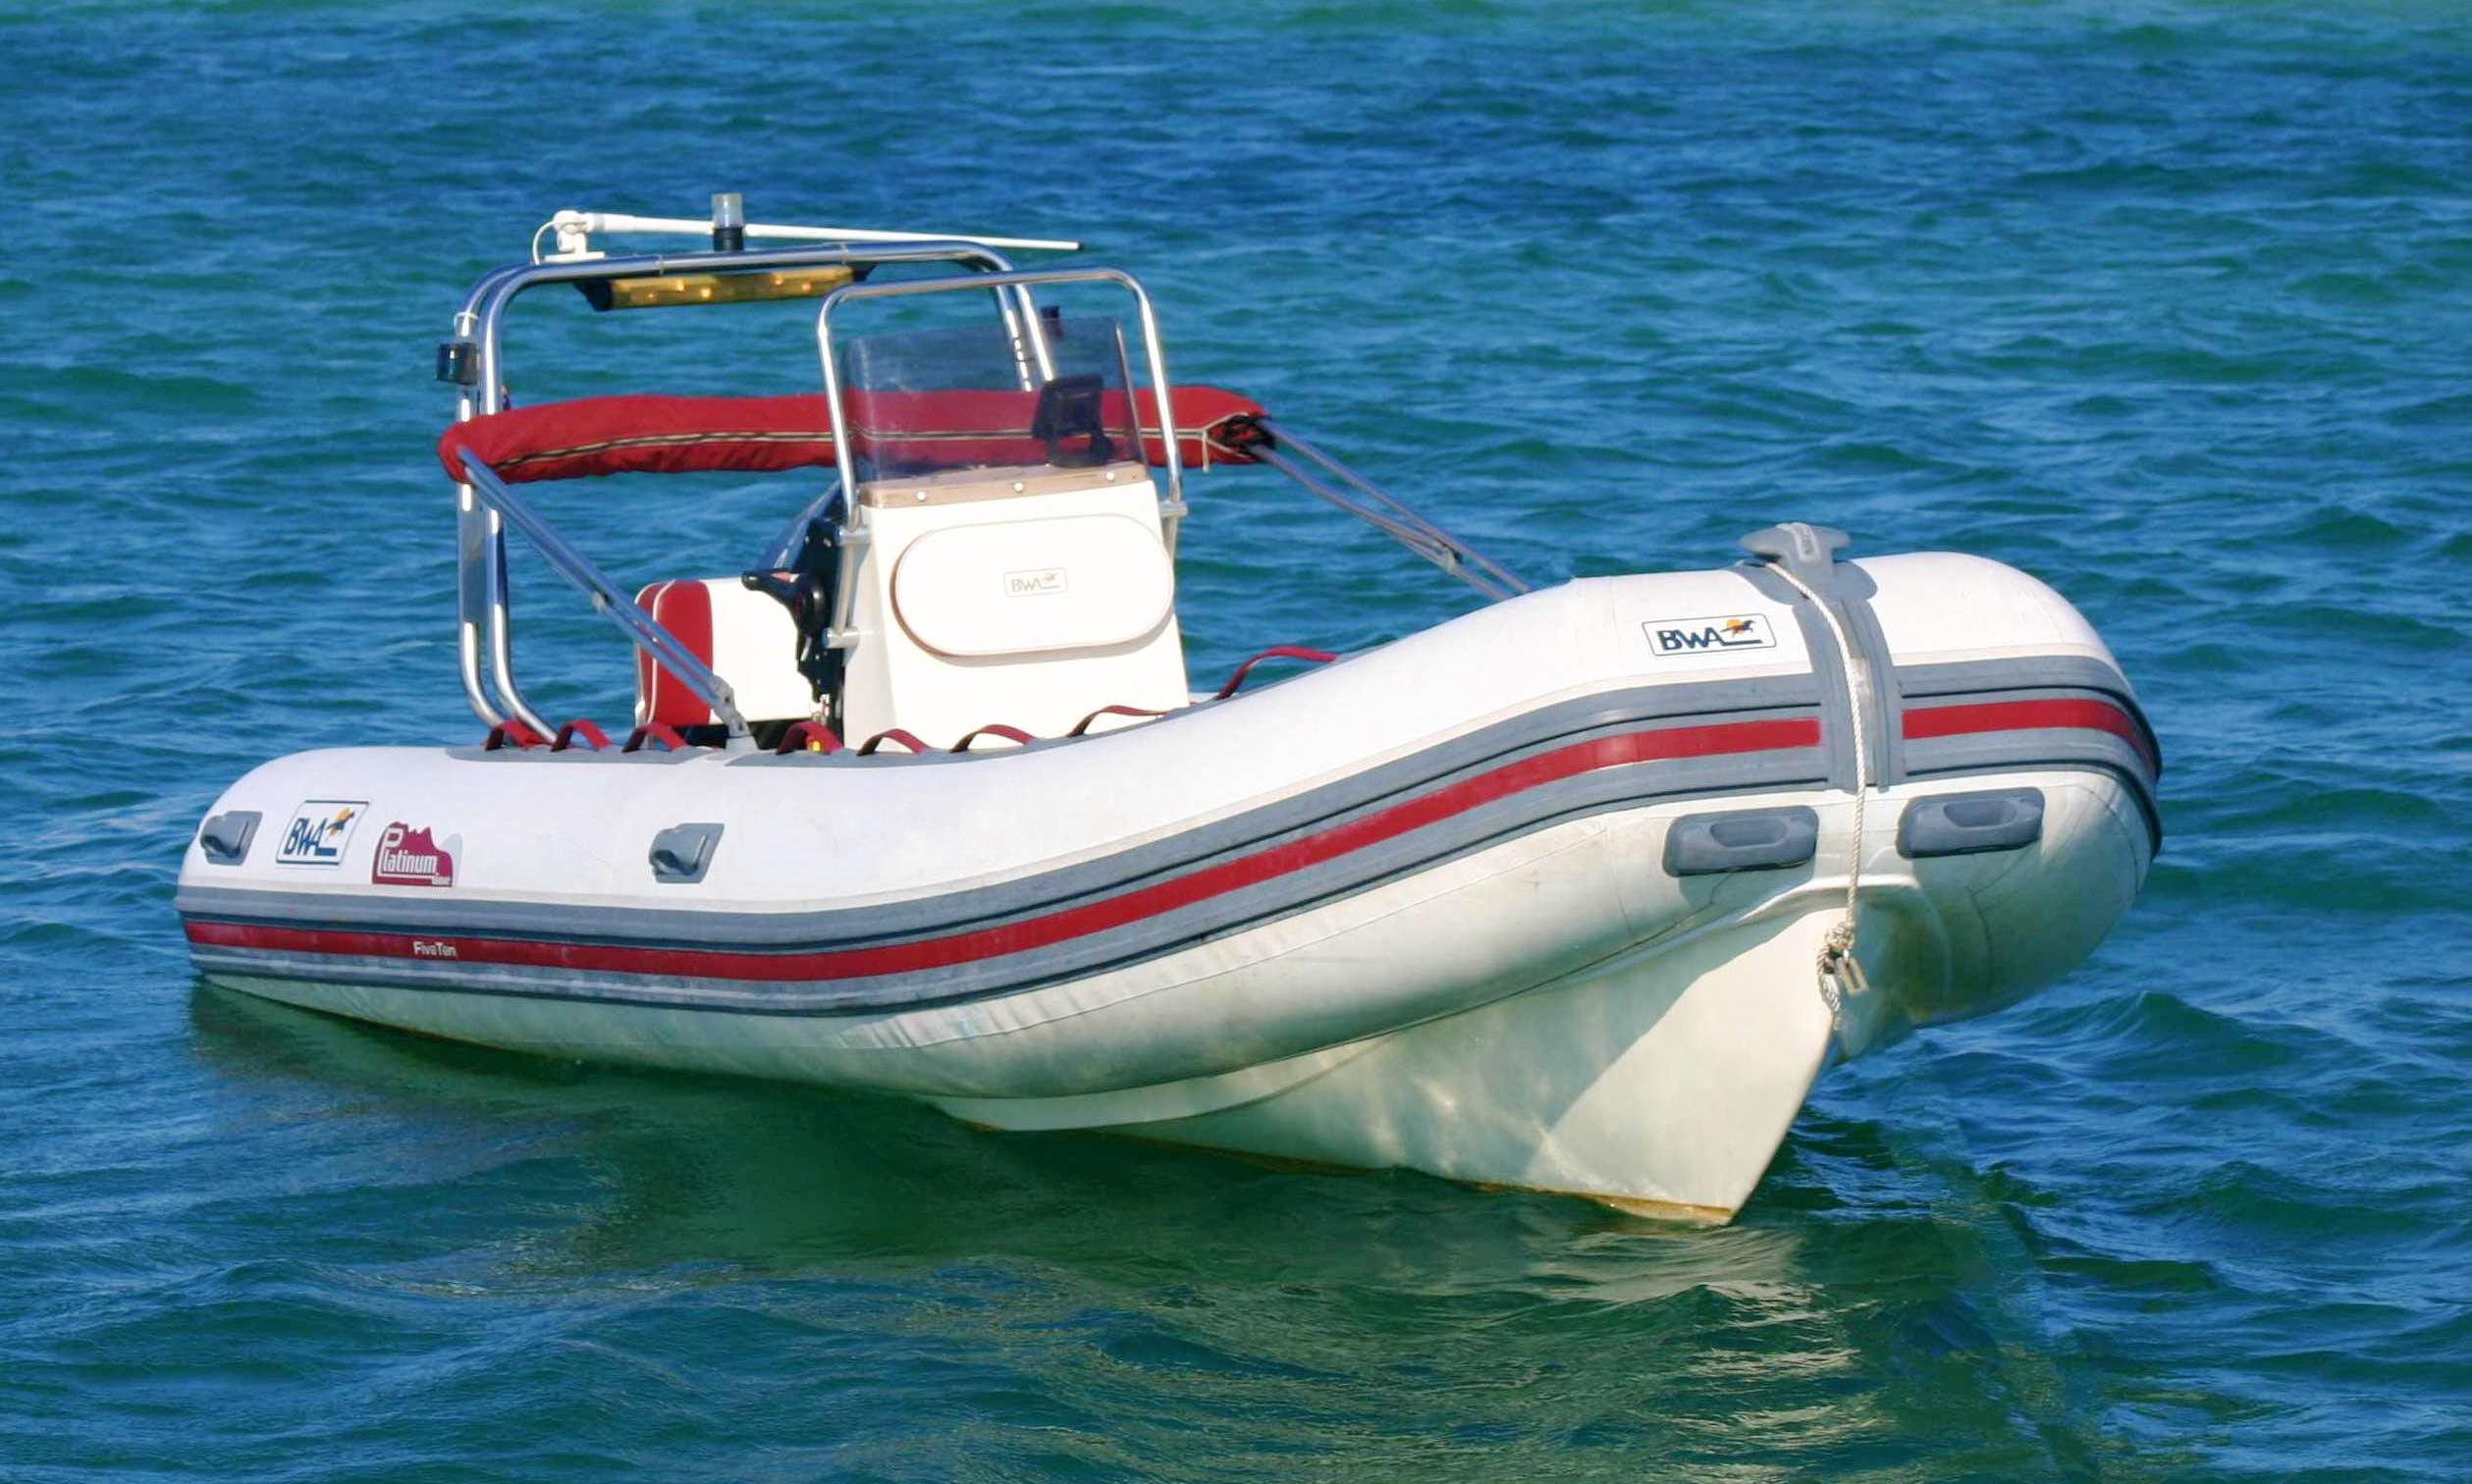 2008 BWA 510 RIB rental in Faro for up to 6 guests